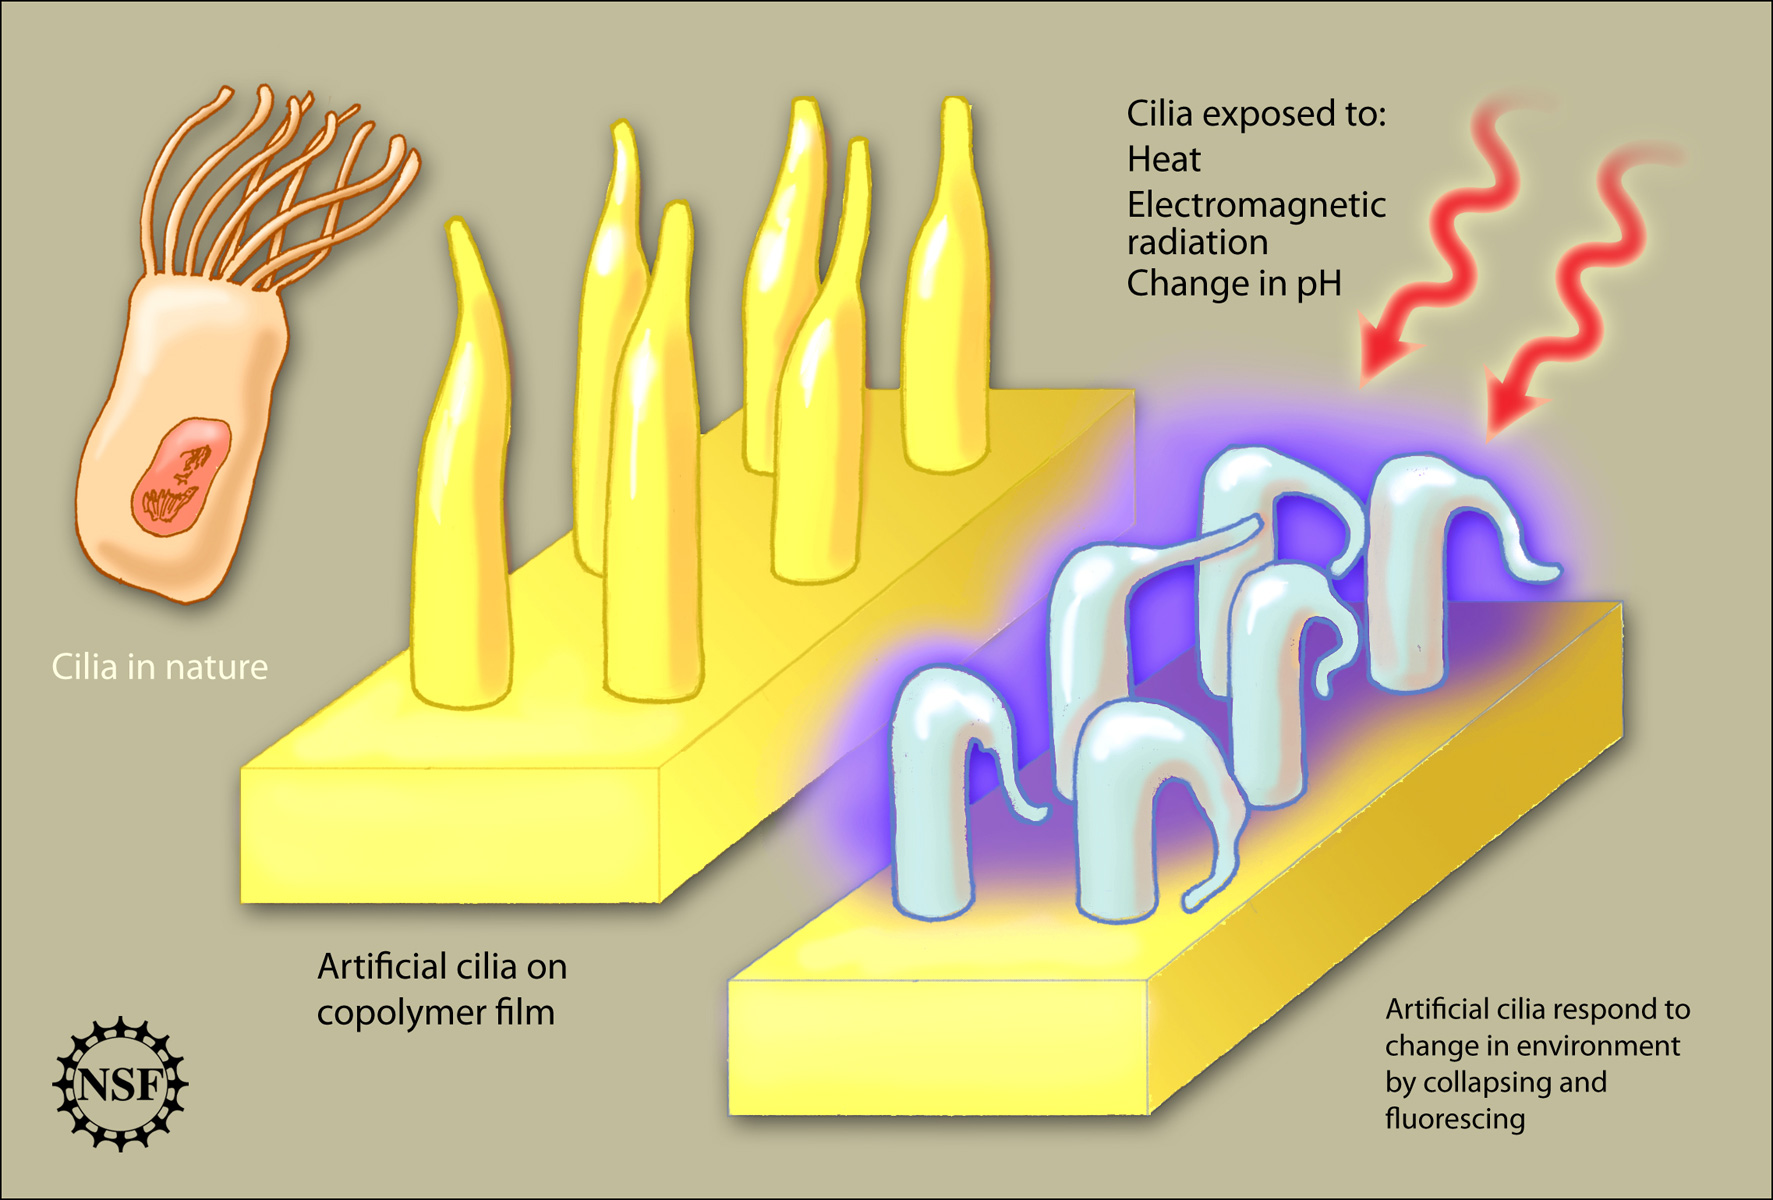 Cilia revolution all images nsf national science foundation download ccuart Gallery